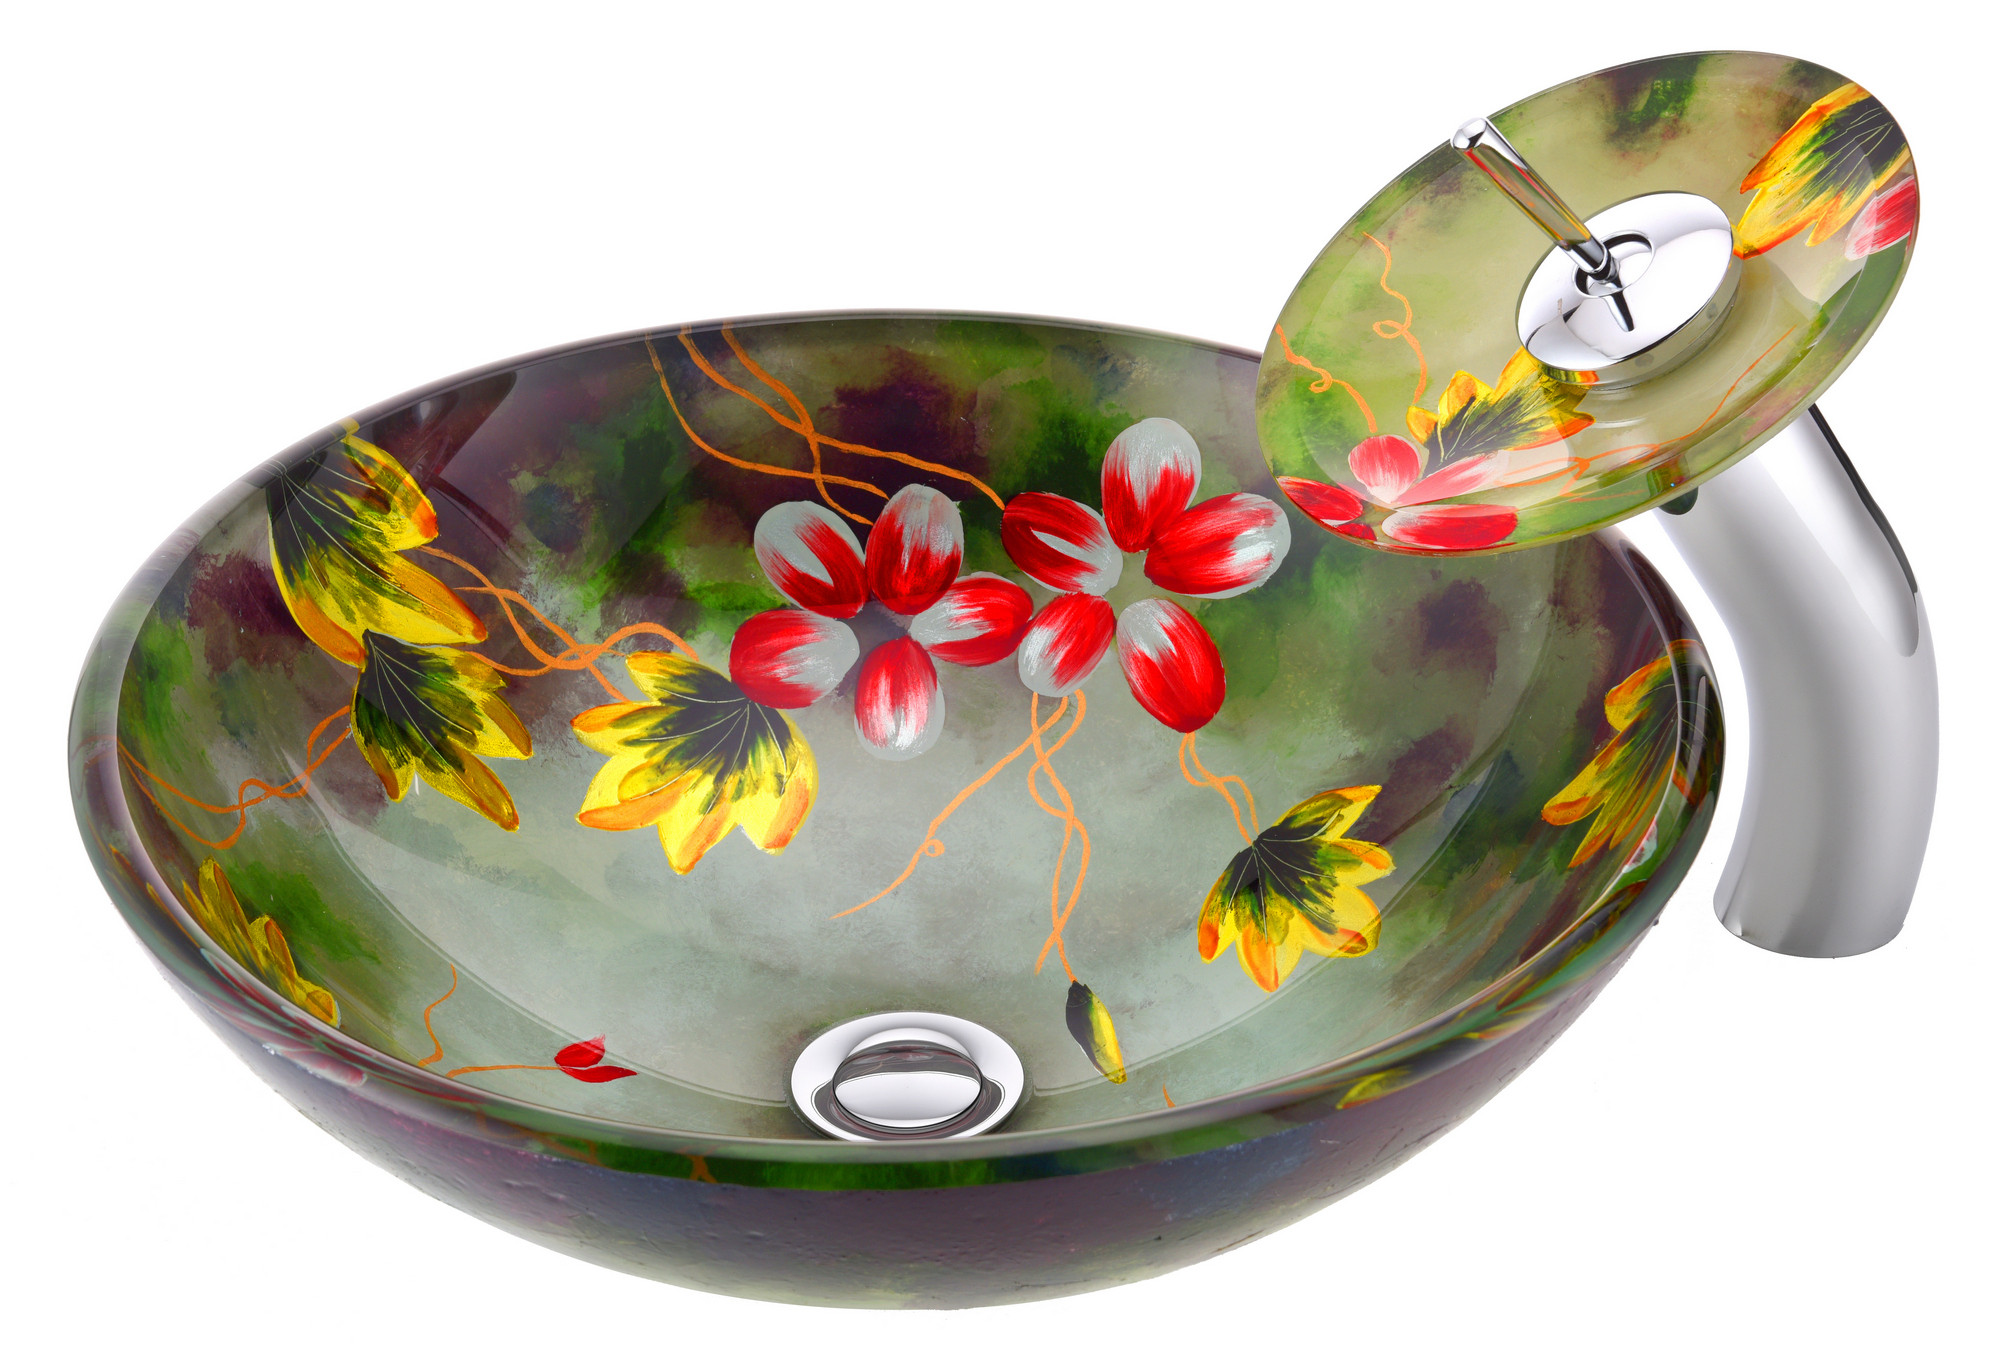 ANZZI LS-AZ217 Impasto Series Deco-Glass Vessel Sink In Hand Painted Mural